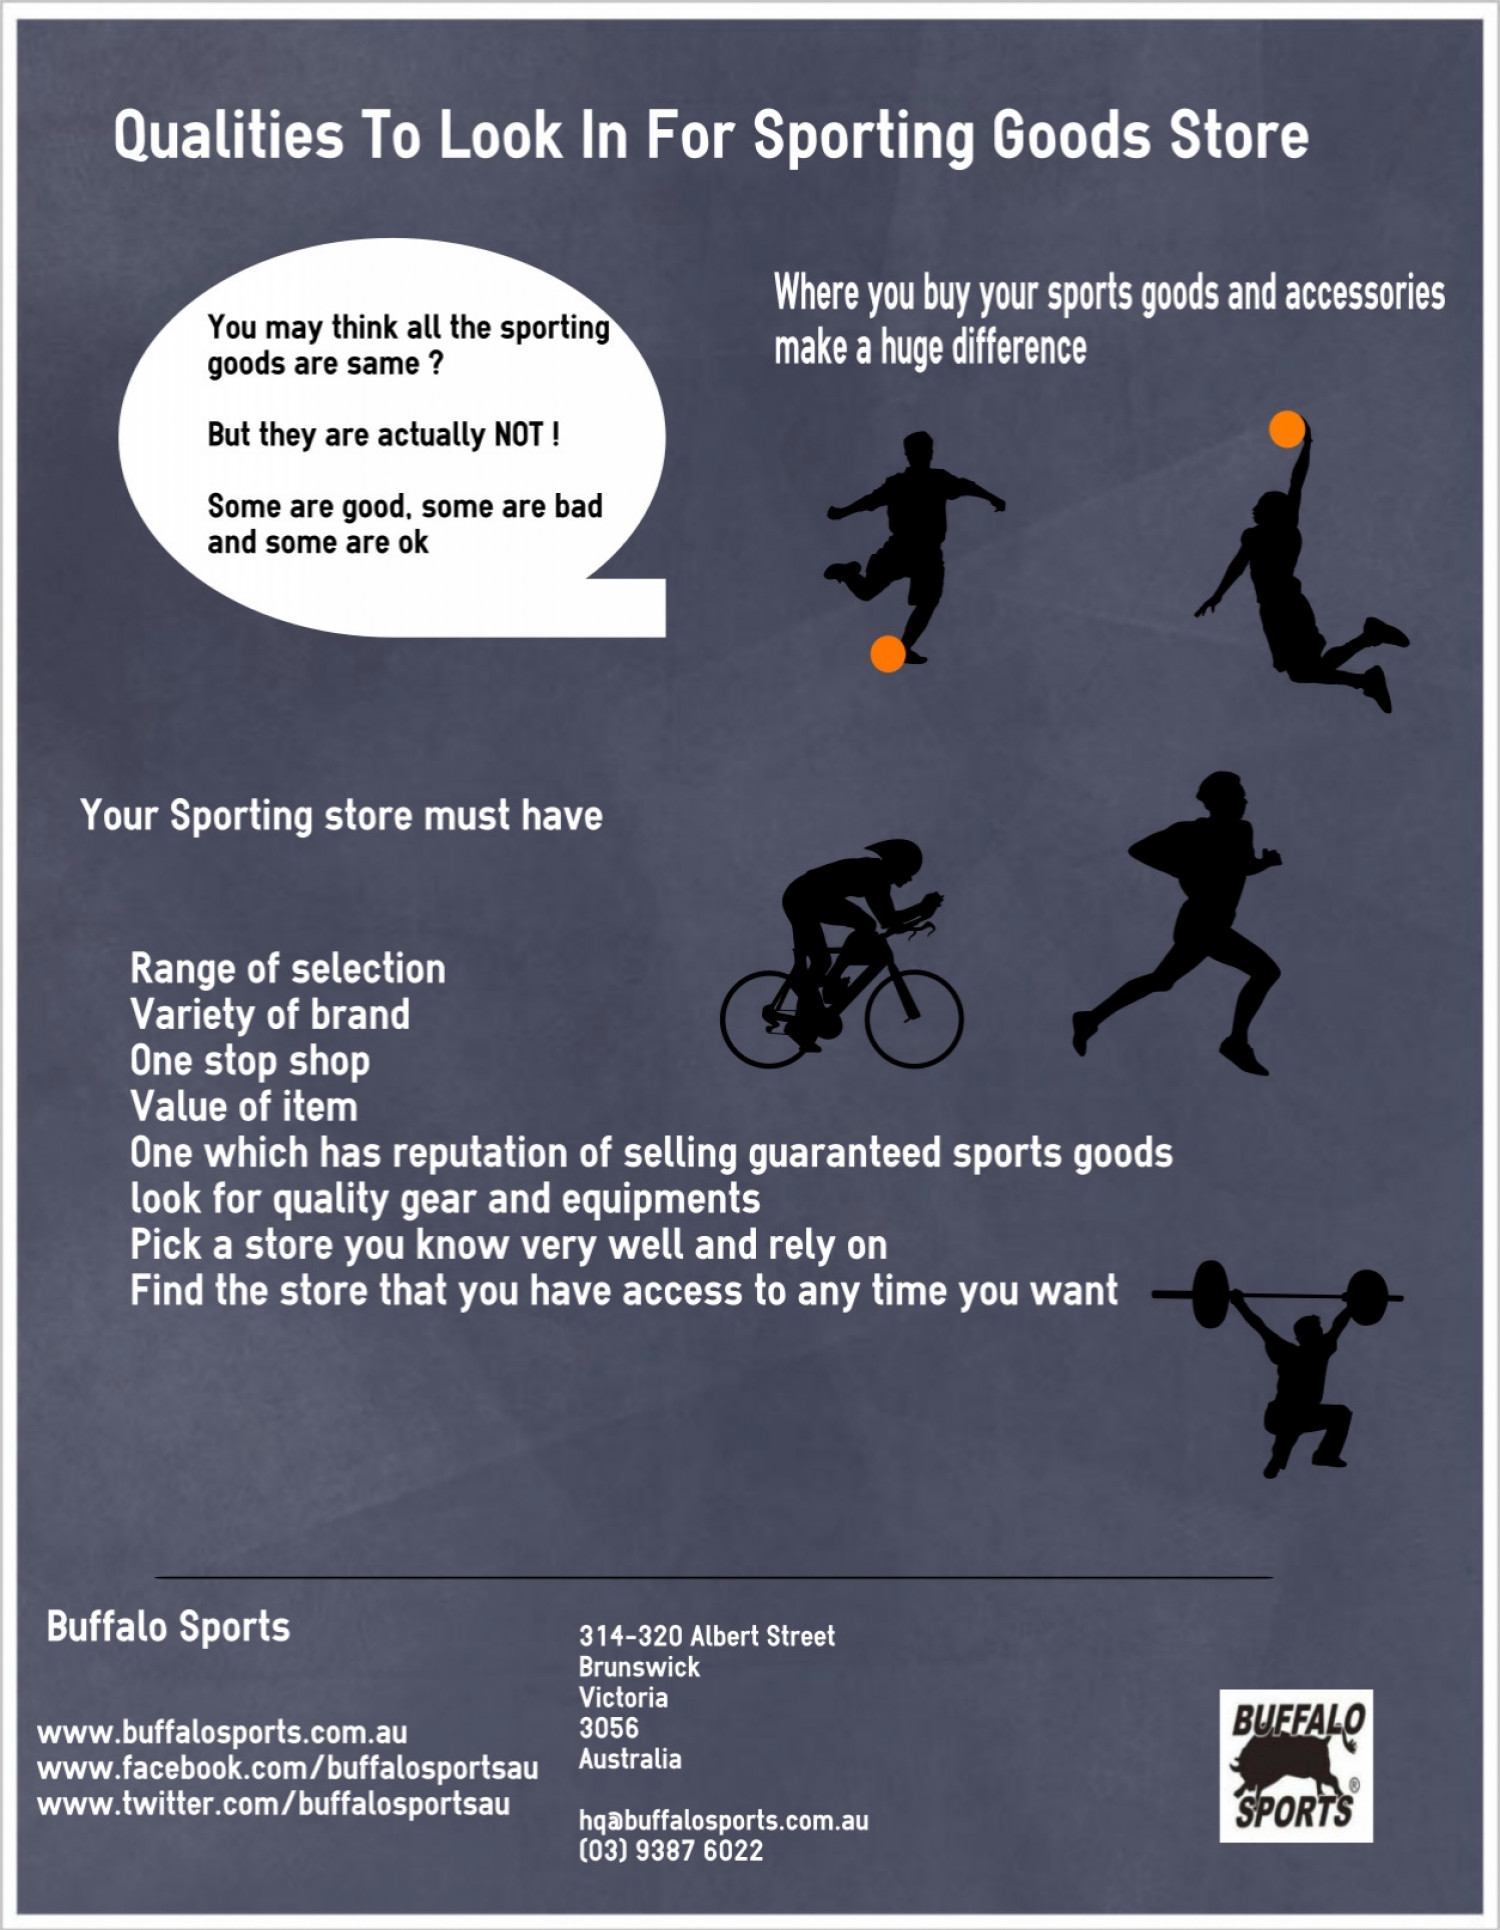 Buffalo Sports   Qualities To Look In For Sporting Goods Store   Infographic